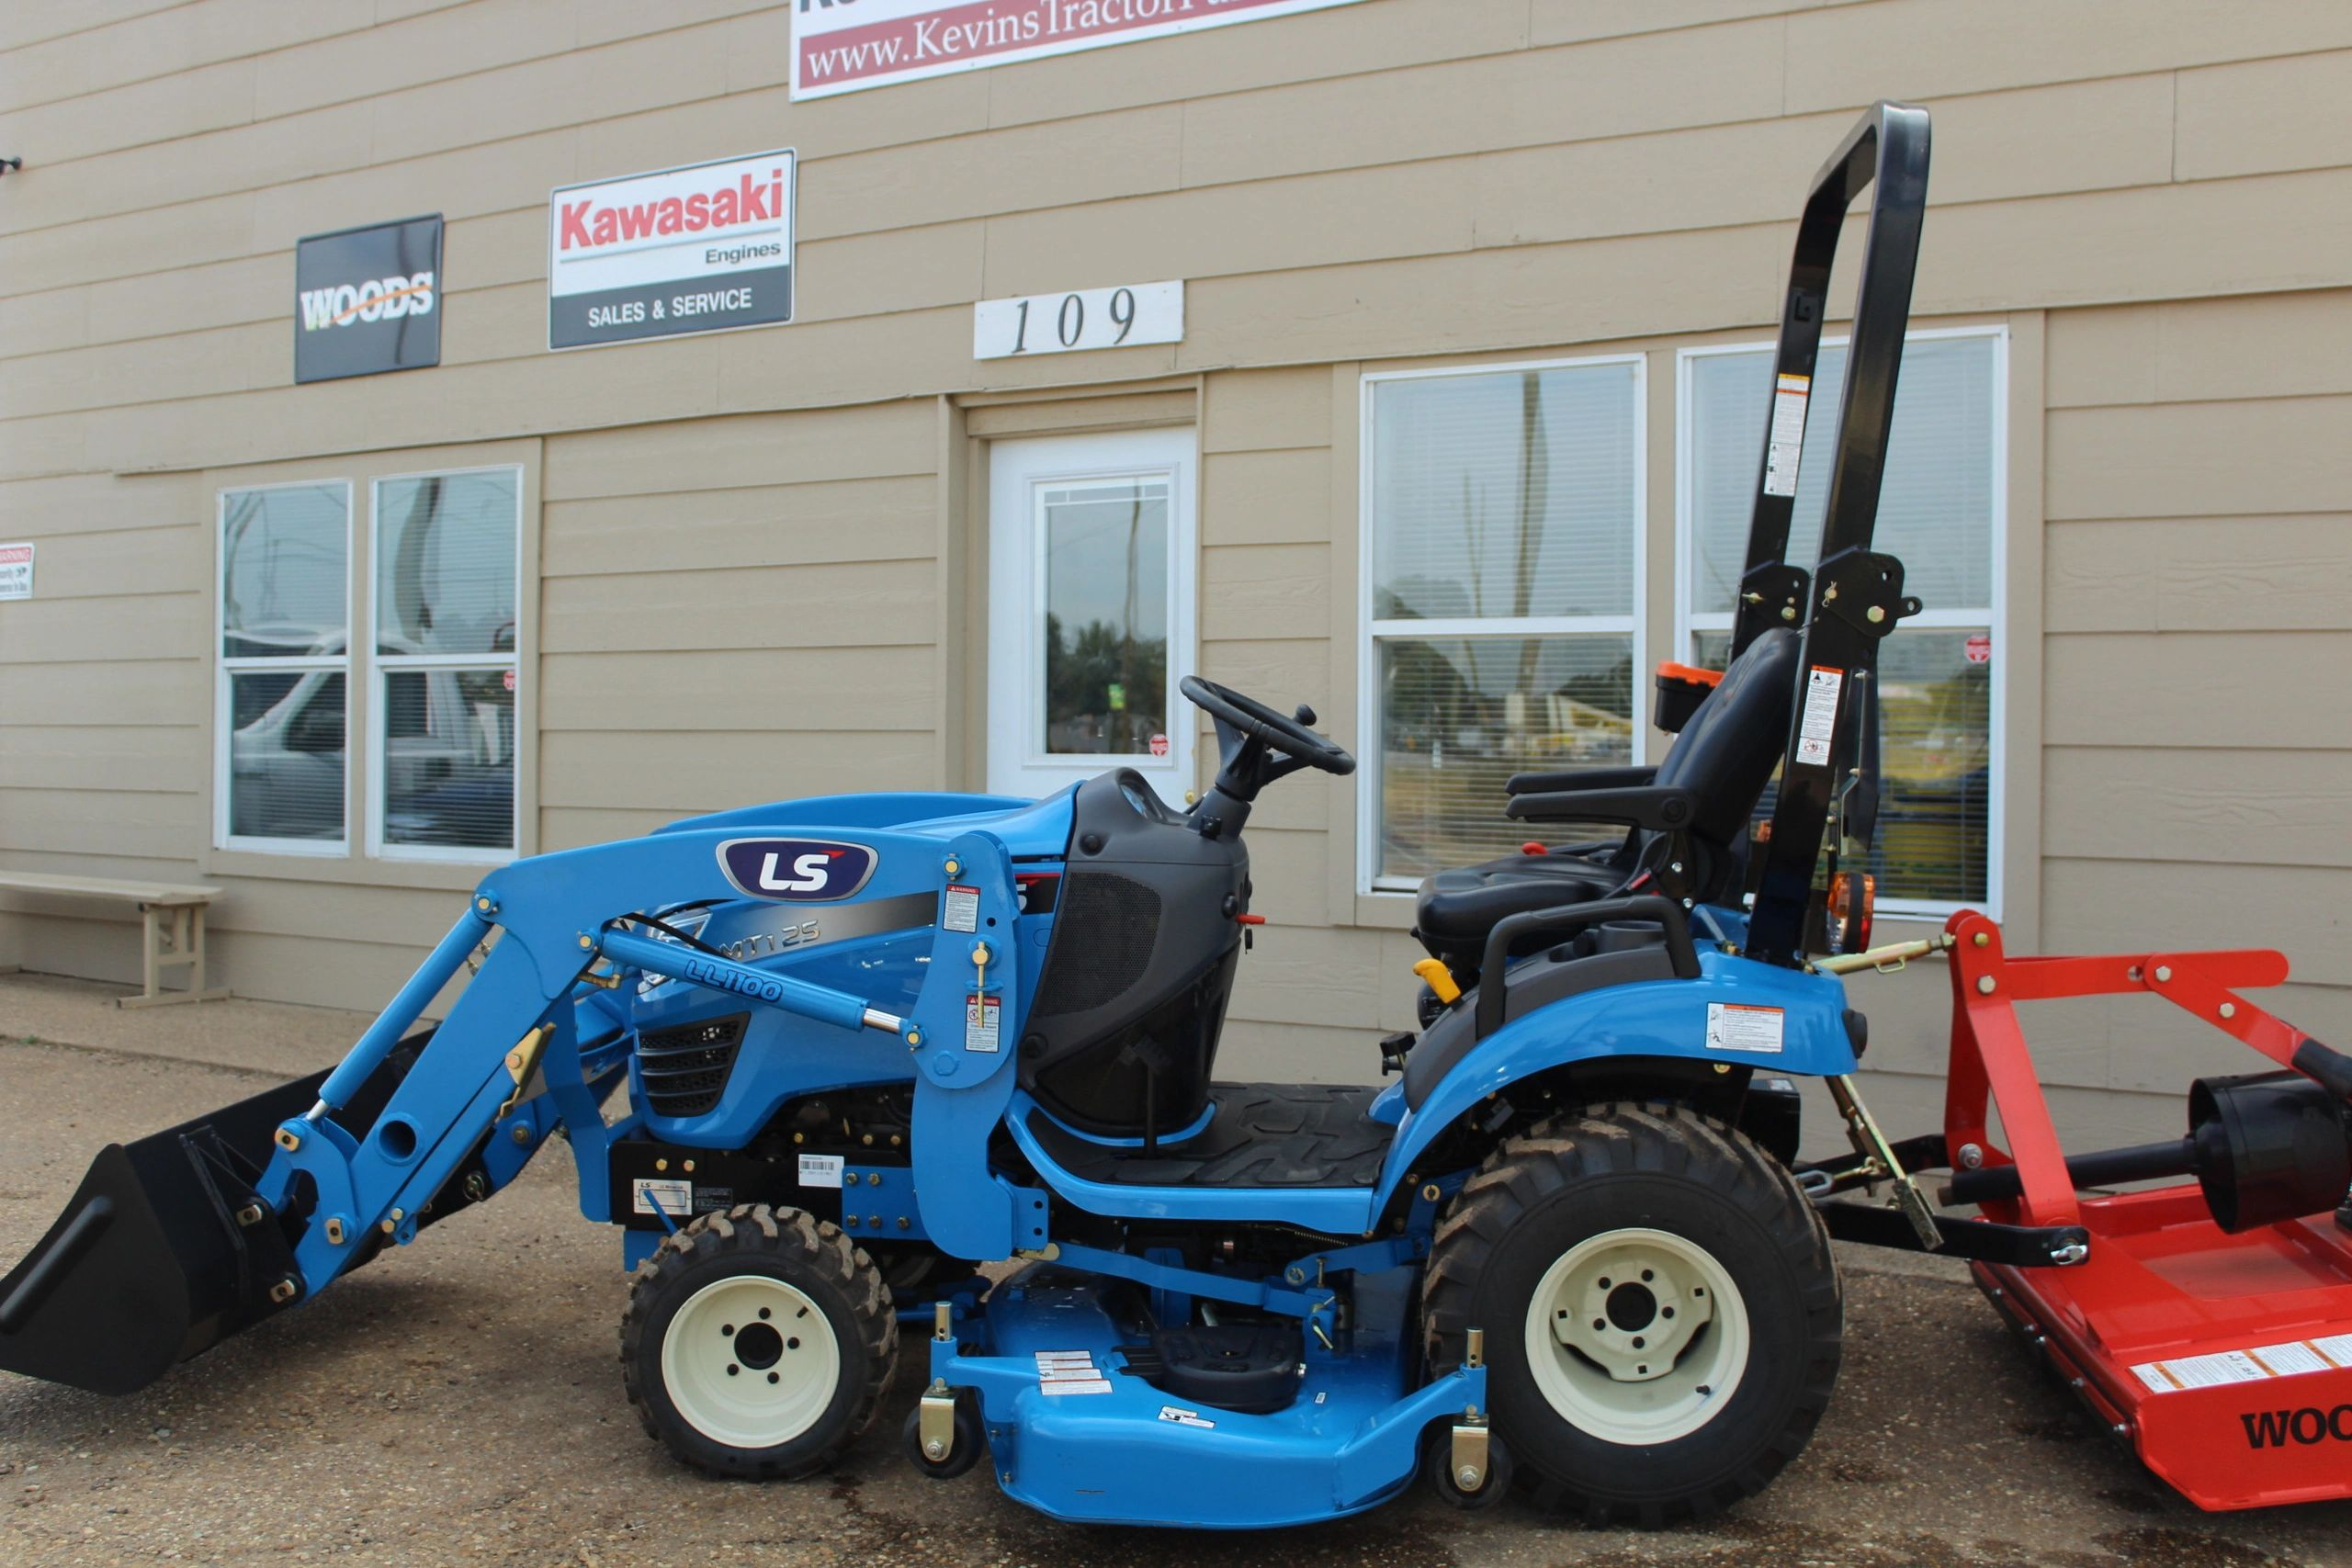 Kevin's Tractor Parts - Tractors, Lawn Mowers